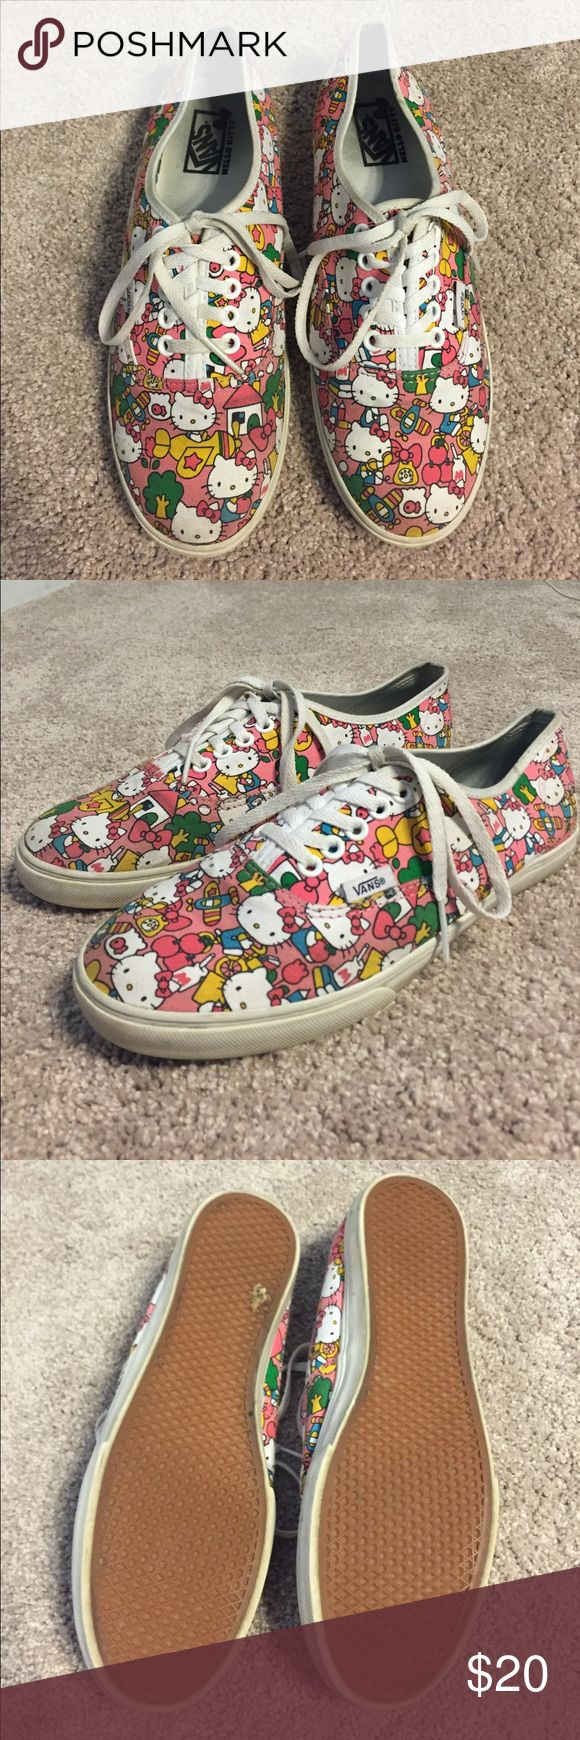 Hello Kitty Vans Pink Great condition only worn a couple of times Hello Kitty Vans. Ask me if you have any questions! Vans Shoes Sneakers